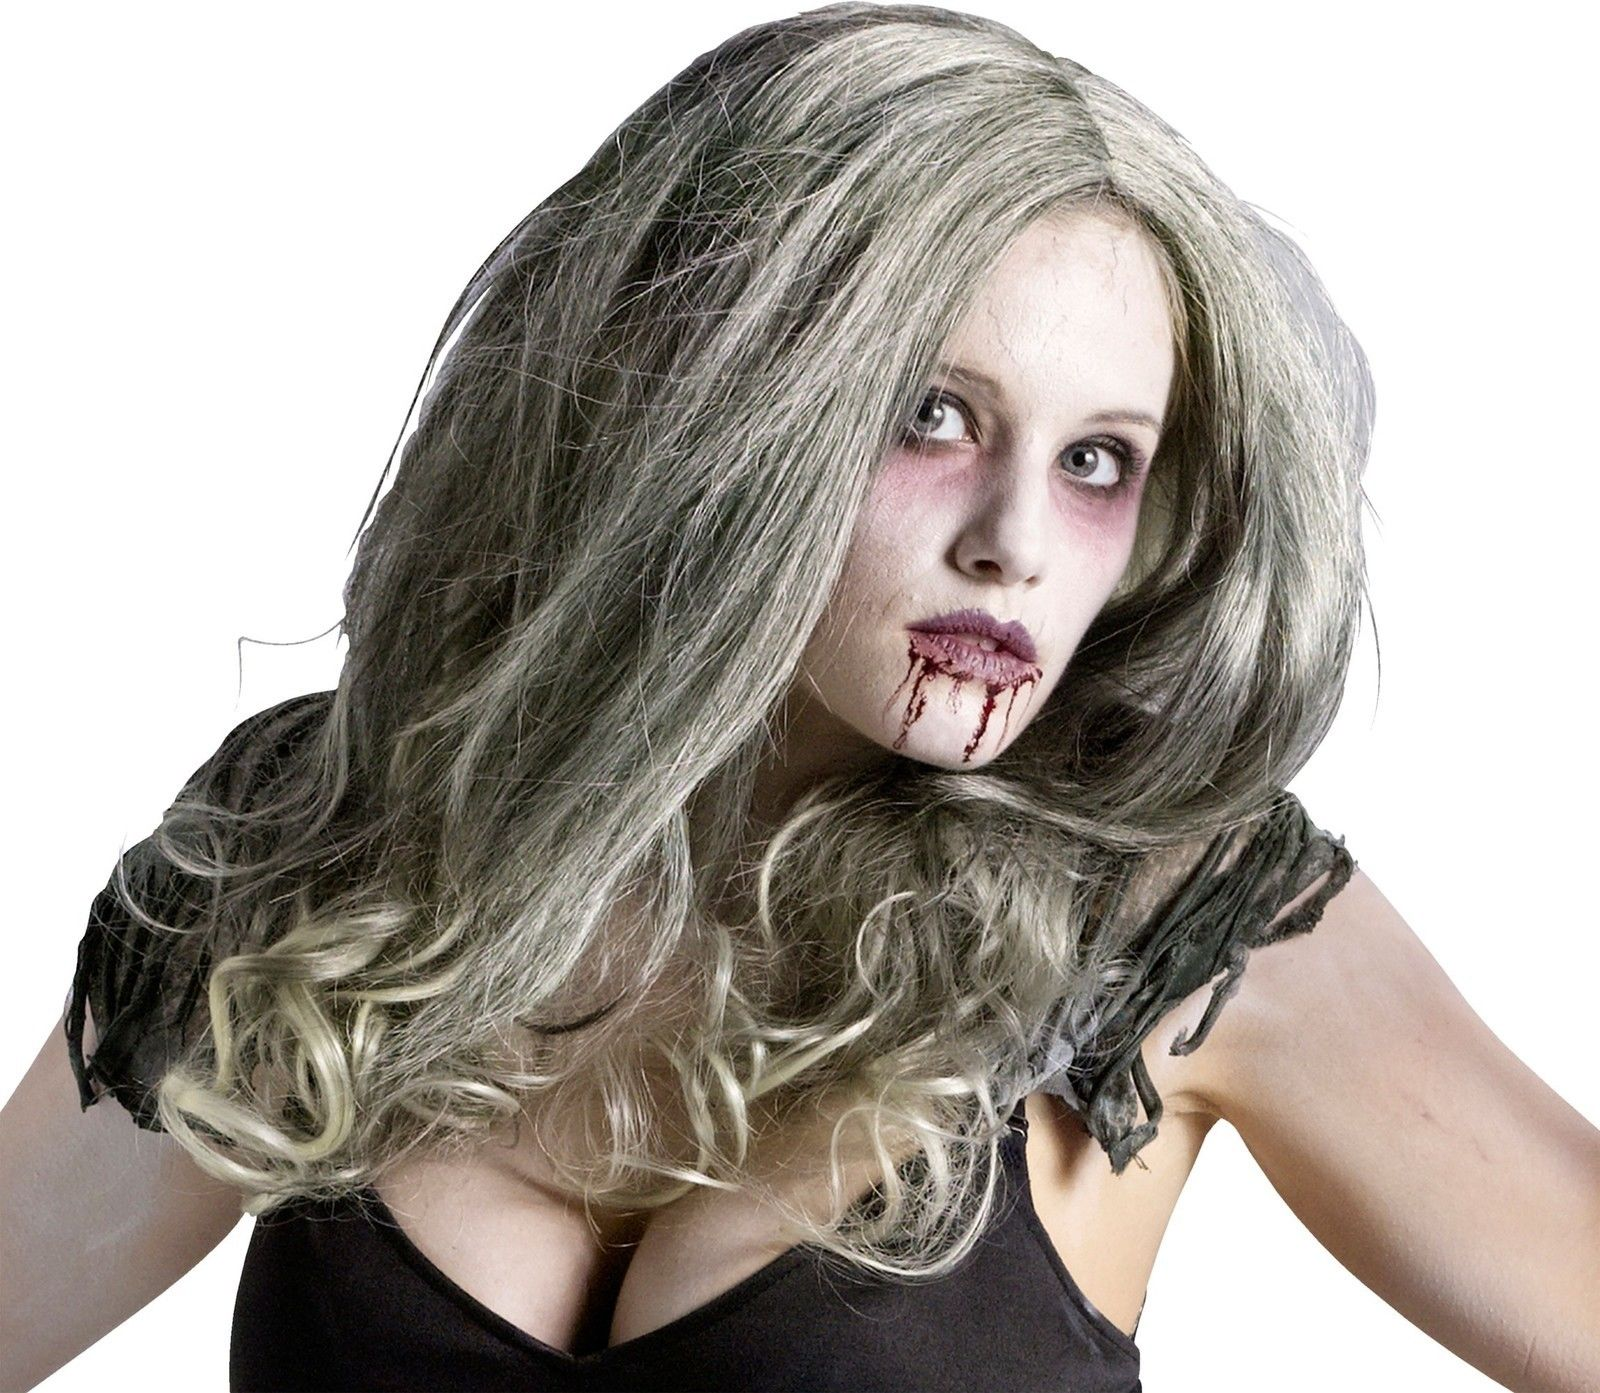 adult zombie queen womens gray green hair wig halloween costume